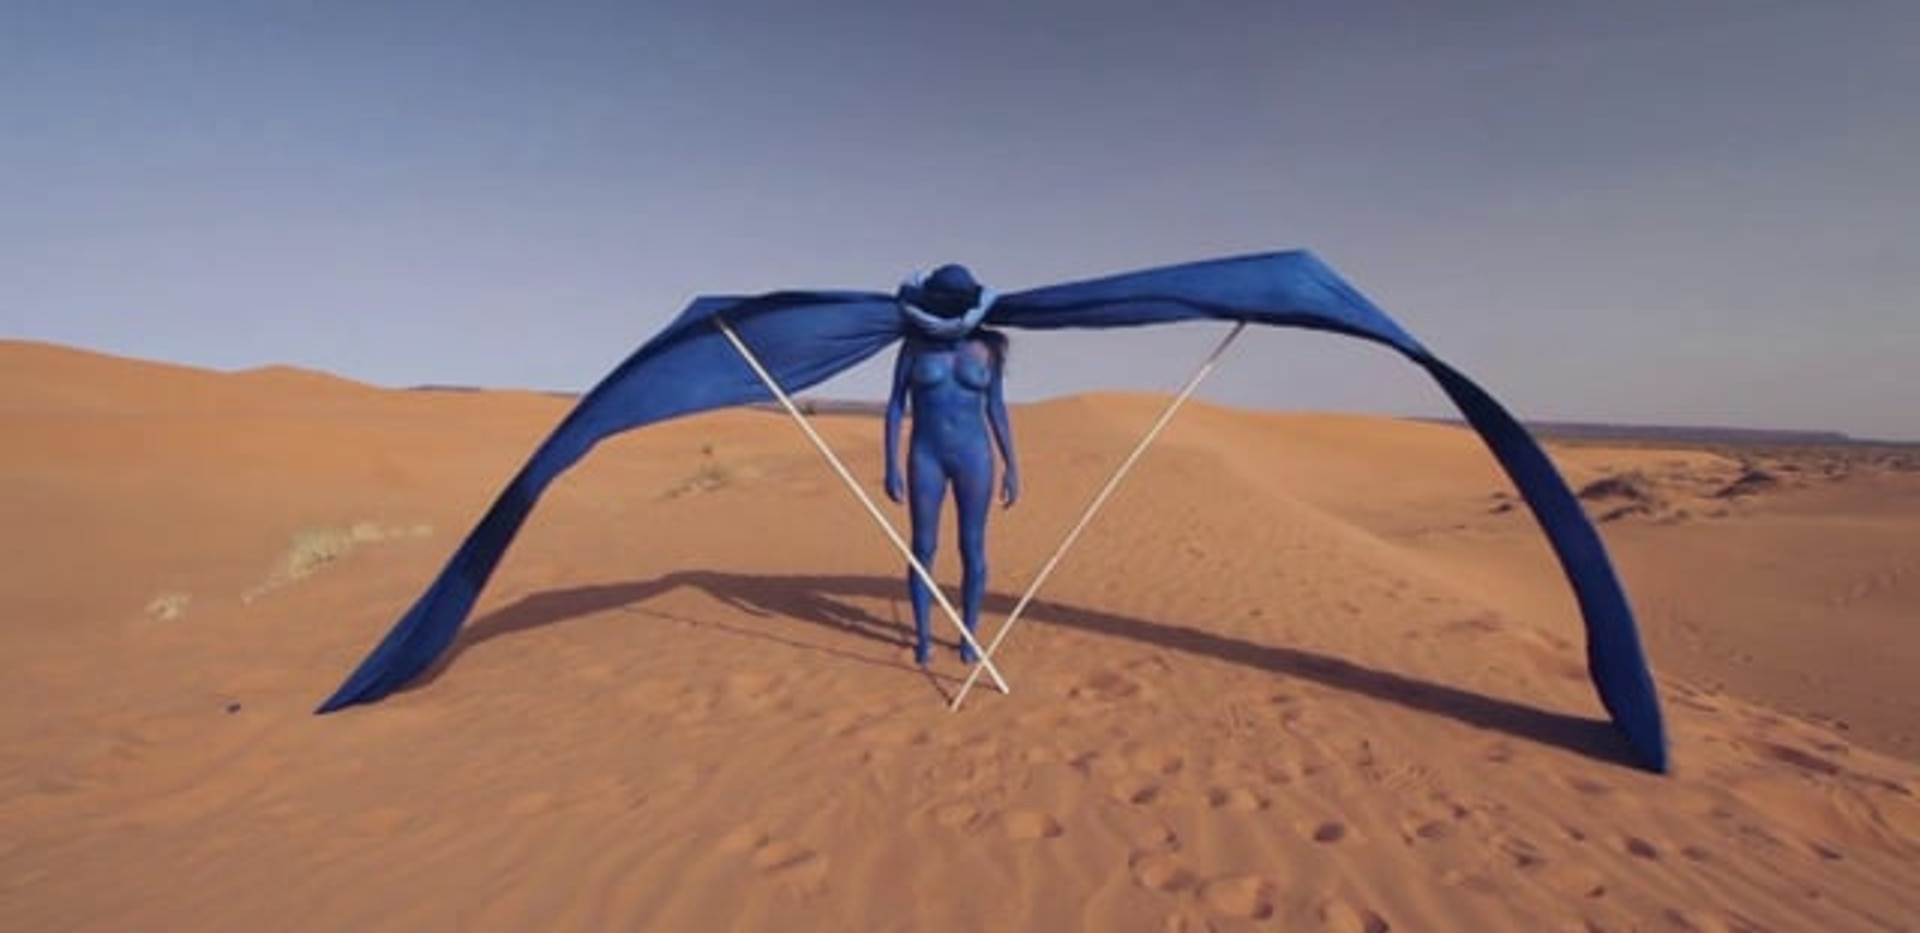 Nomad - Sahara 2014 - Video of performance - HD Video 5:50 - Edition of 5 + 2EA